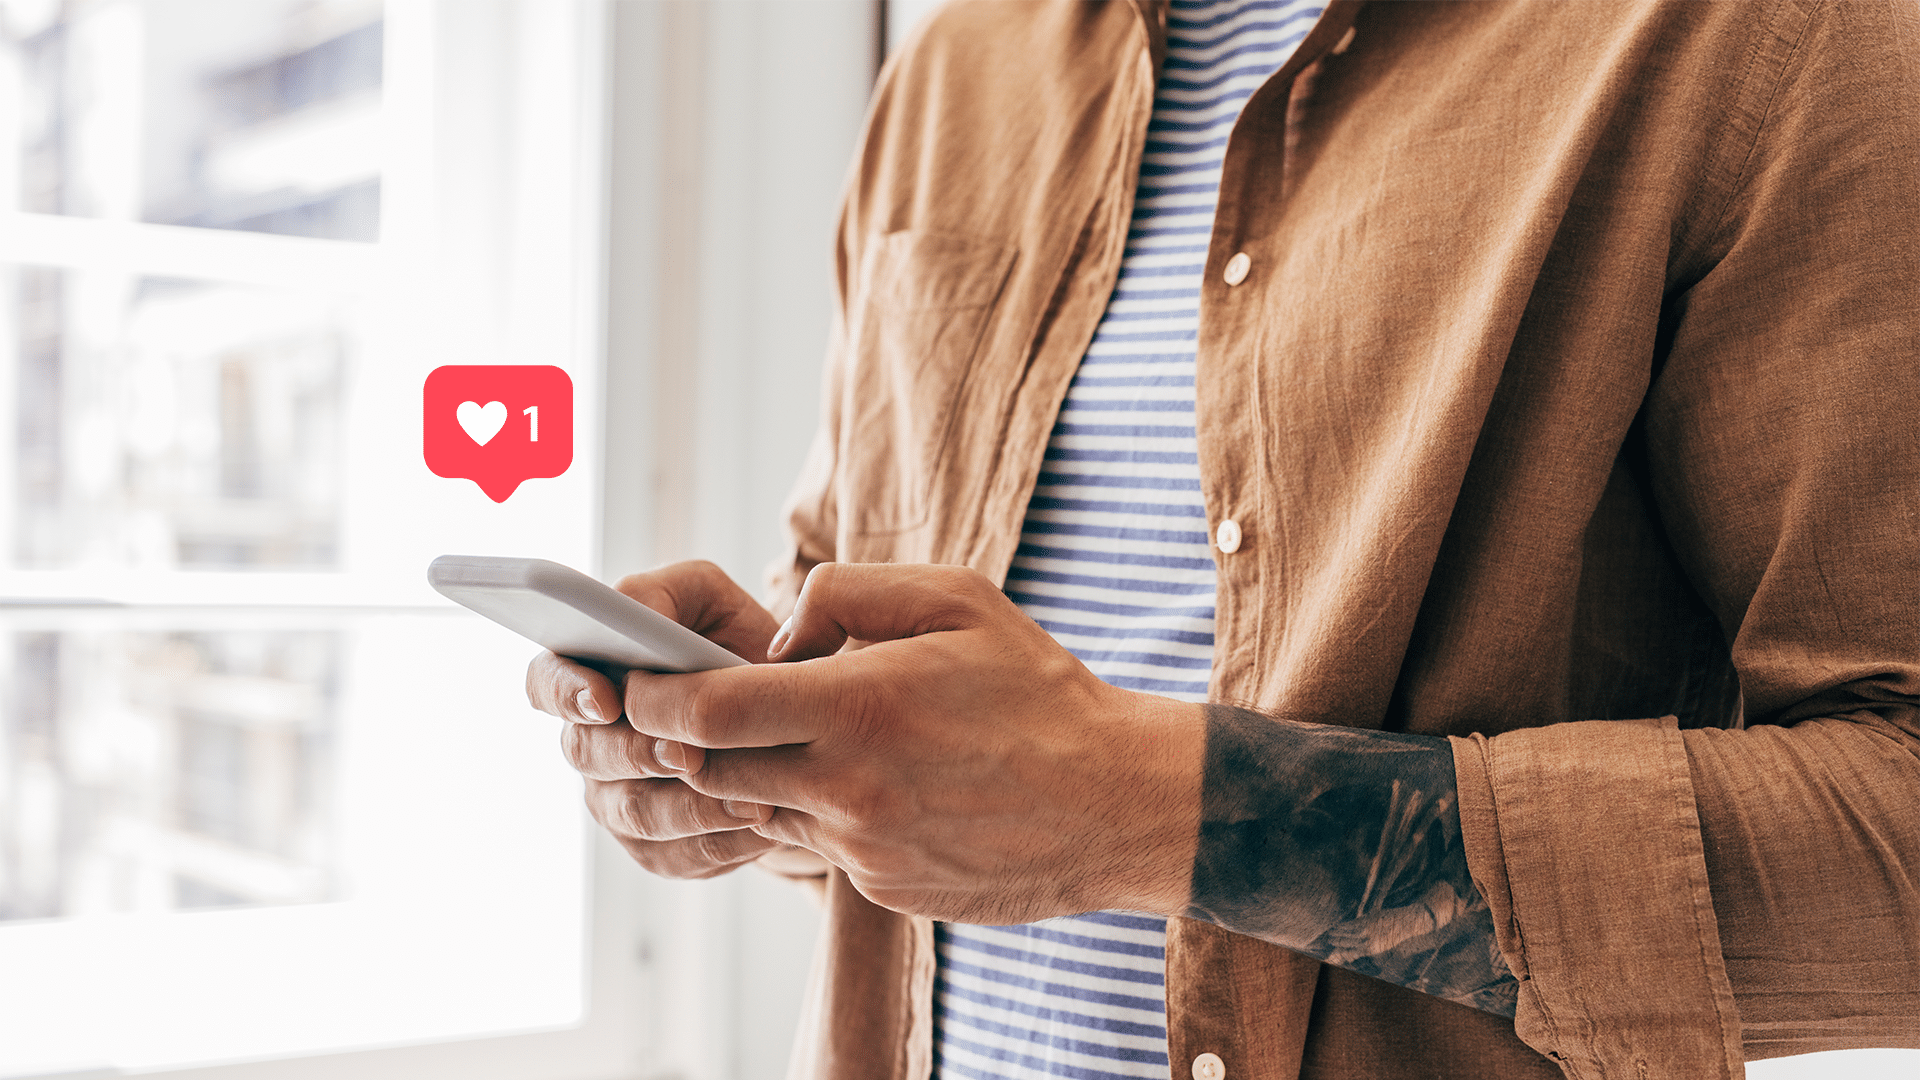 The importance of brand interaction in social networks